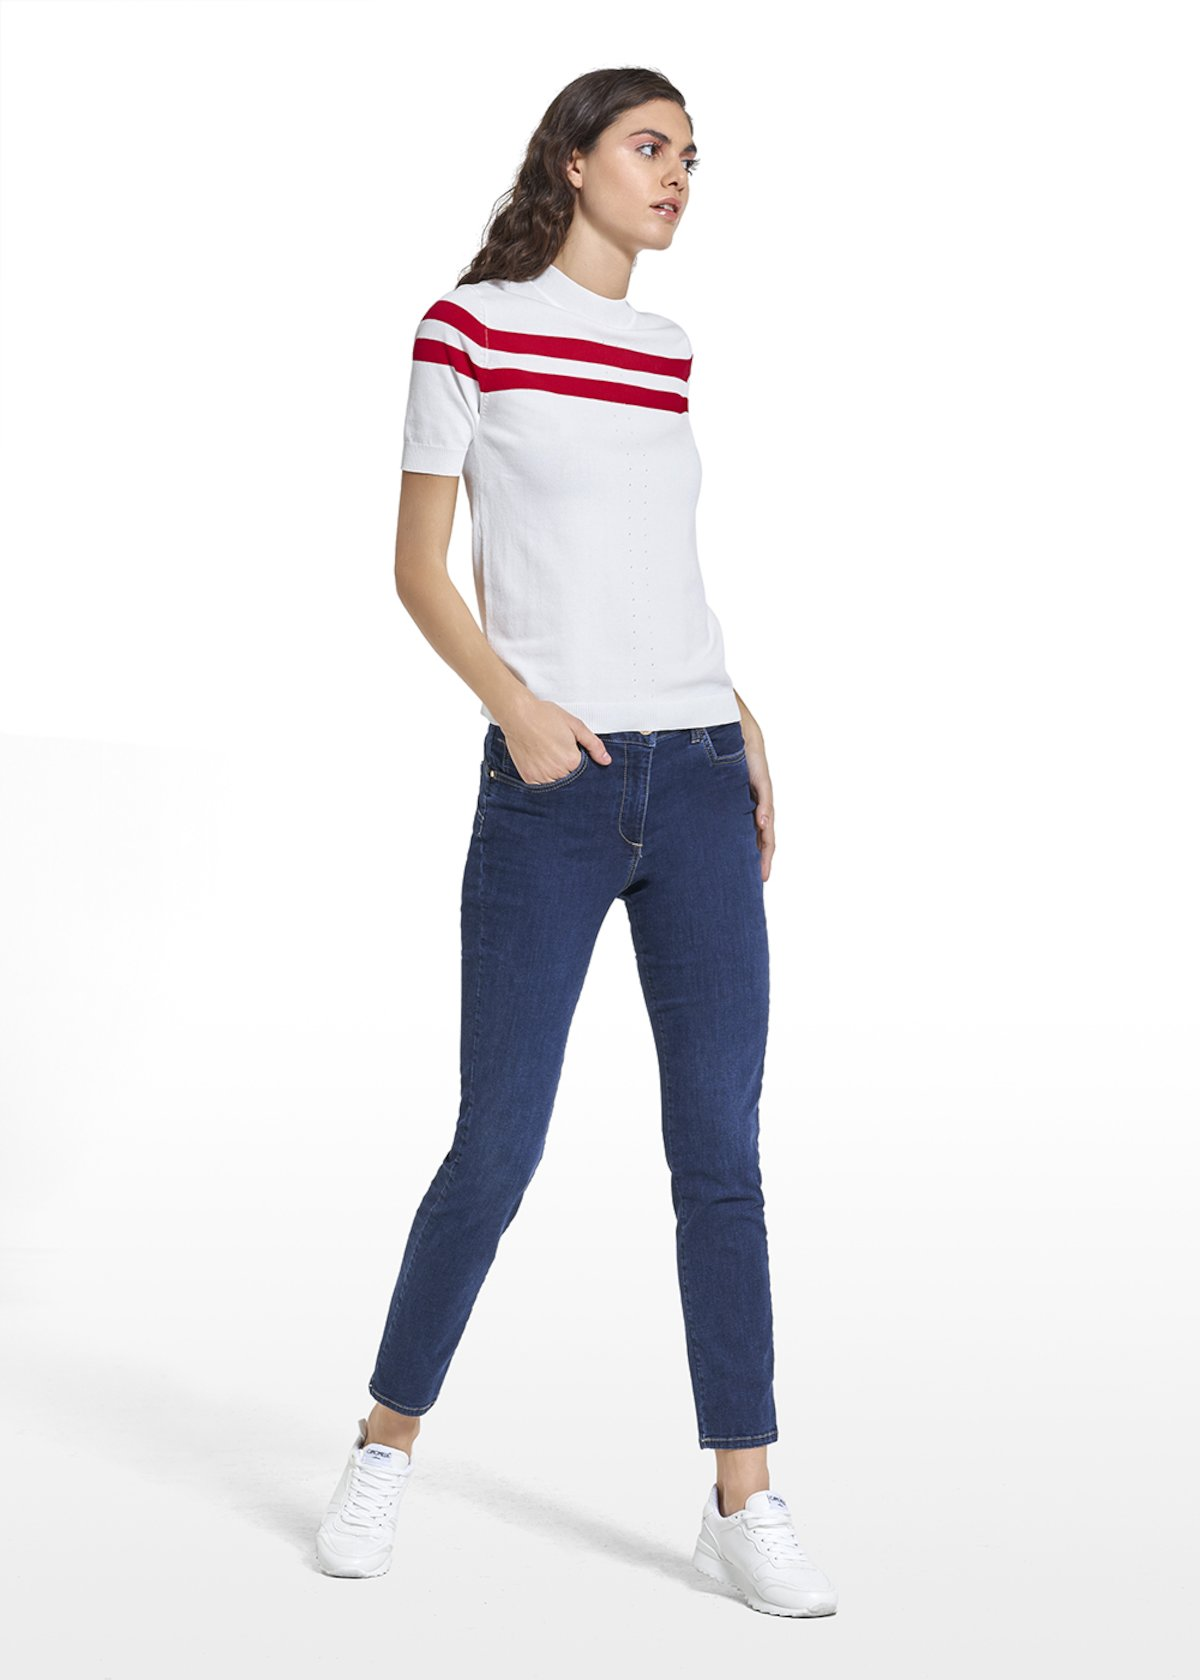 Molly jersey with double row on the front - White\ Tulipano - Woman - Category image